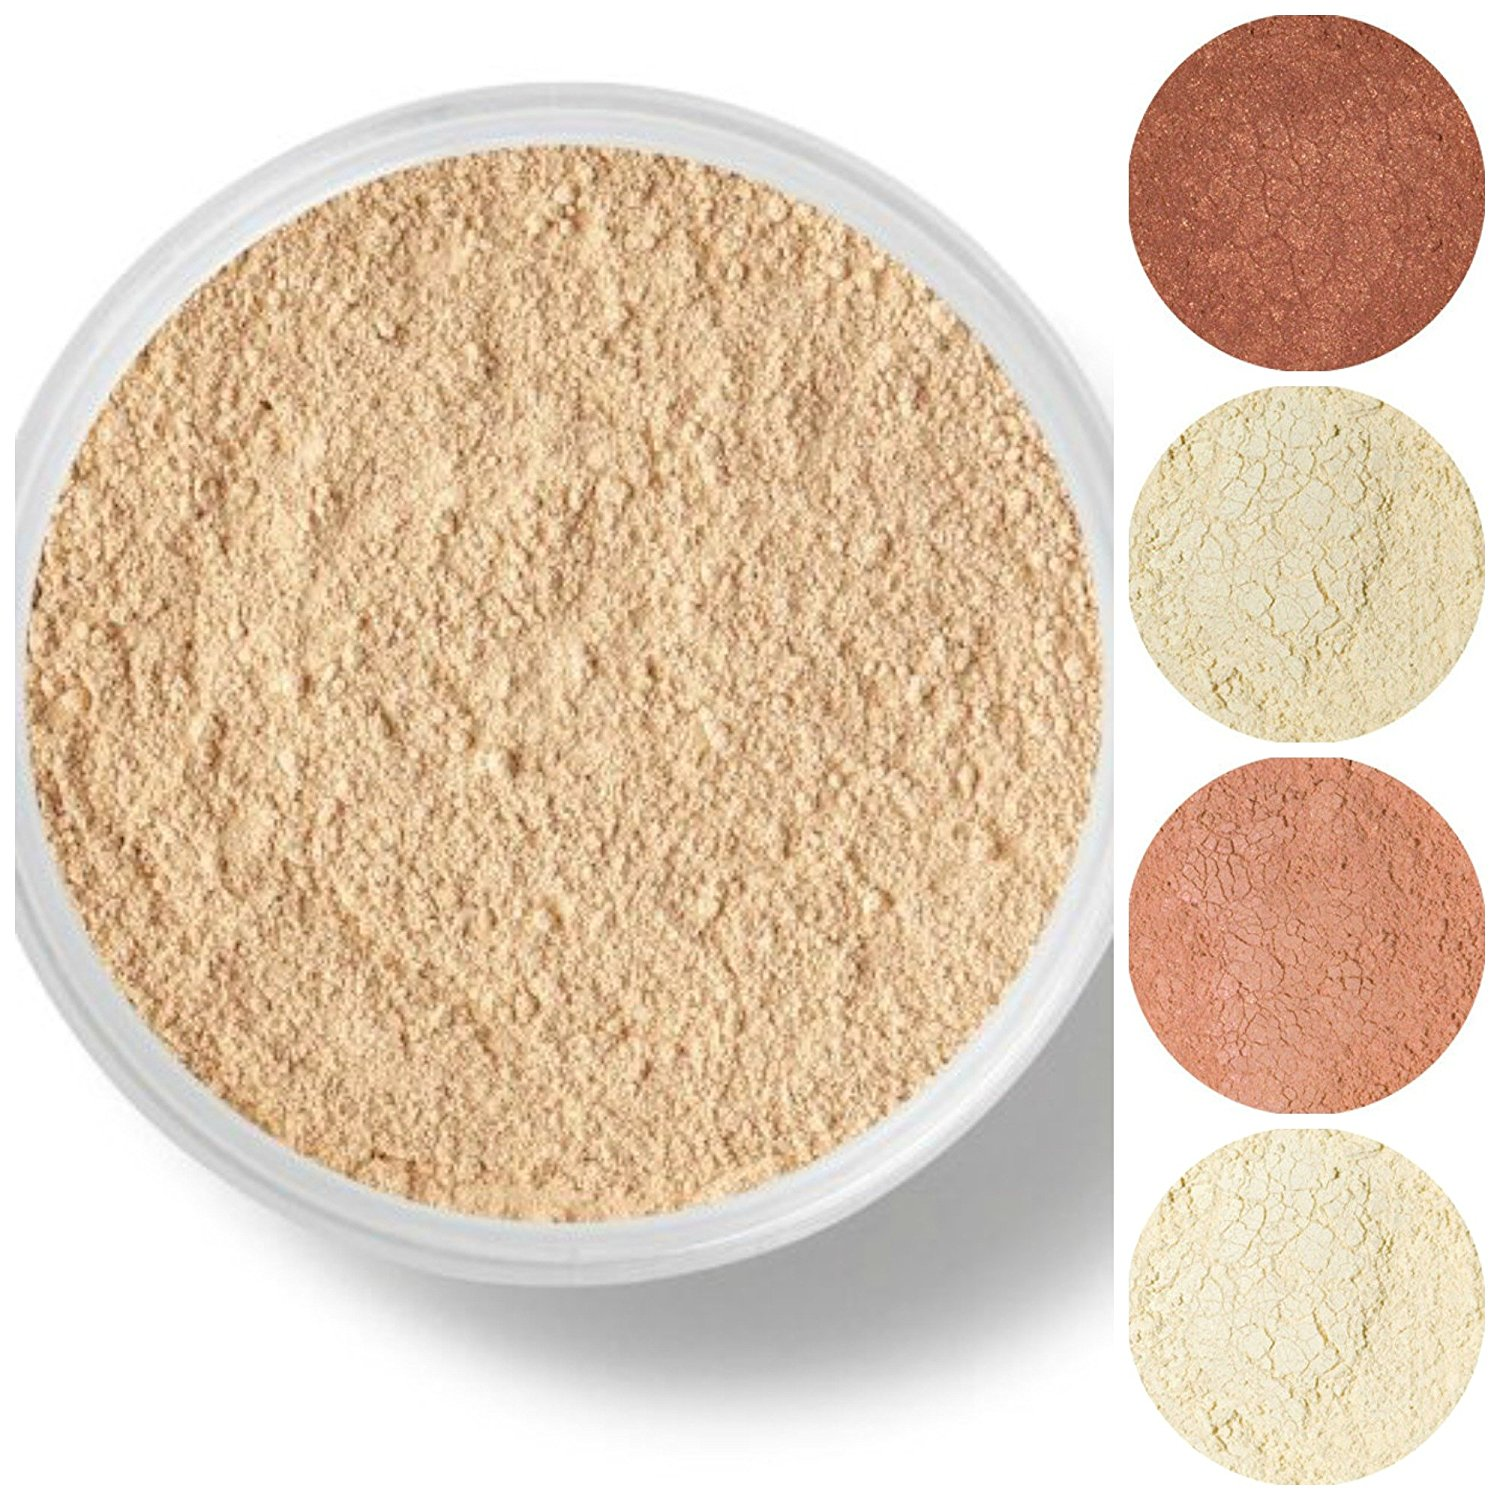 STARTER SET Mineral Makeup Kit Bare Skin Sheer Powder Matte Foundation Veil (Fair Shade 1)